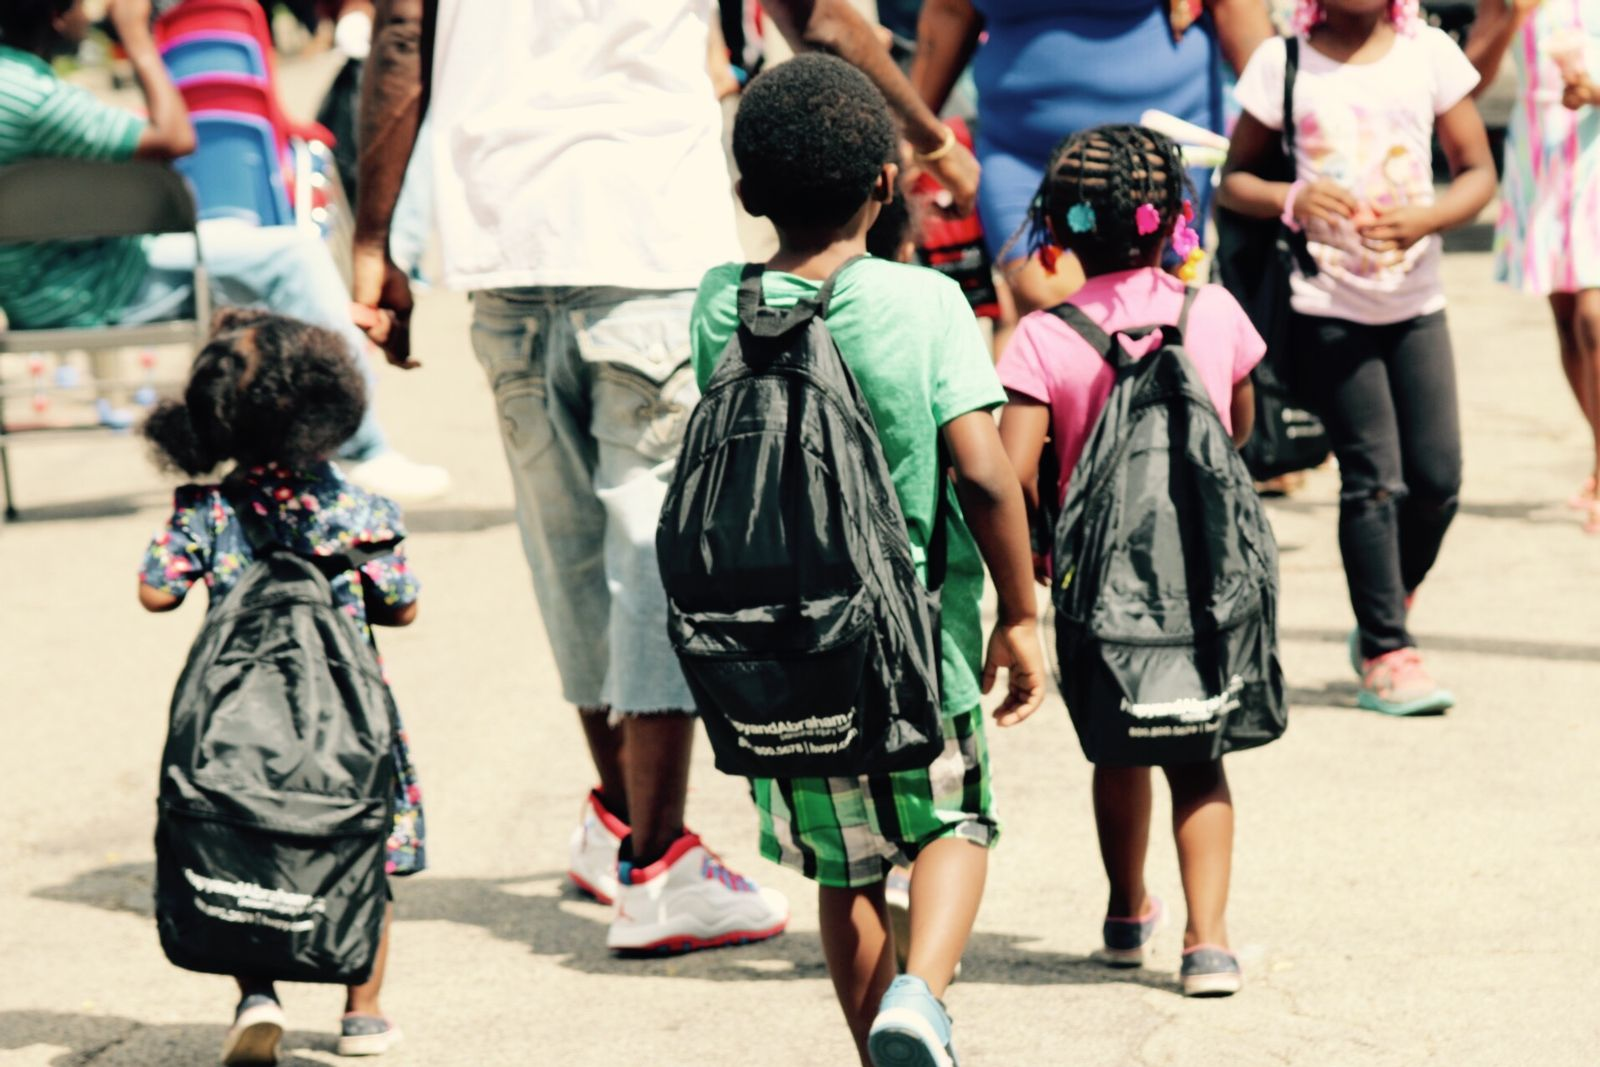 Kids with new backpacks walking to school